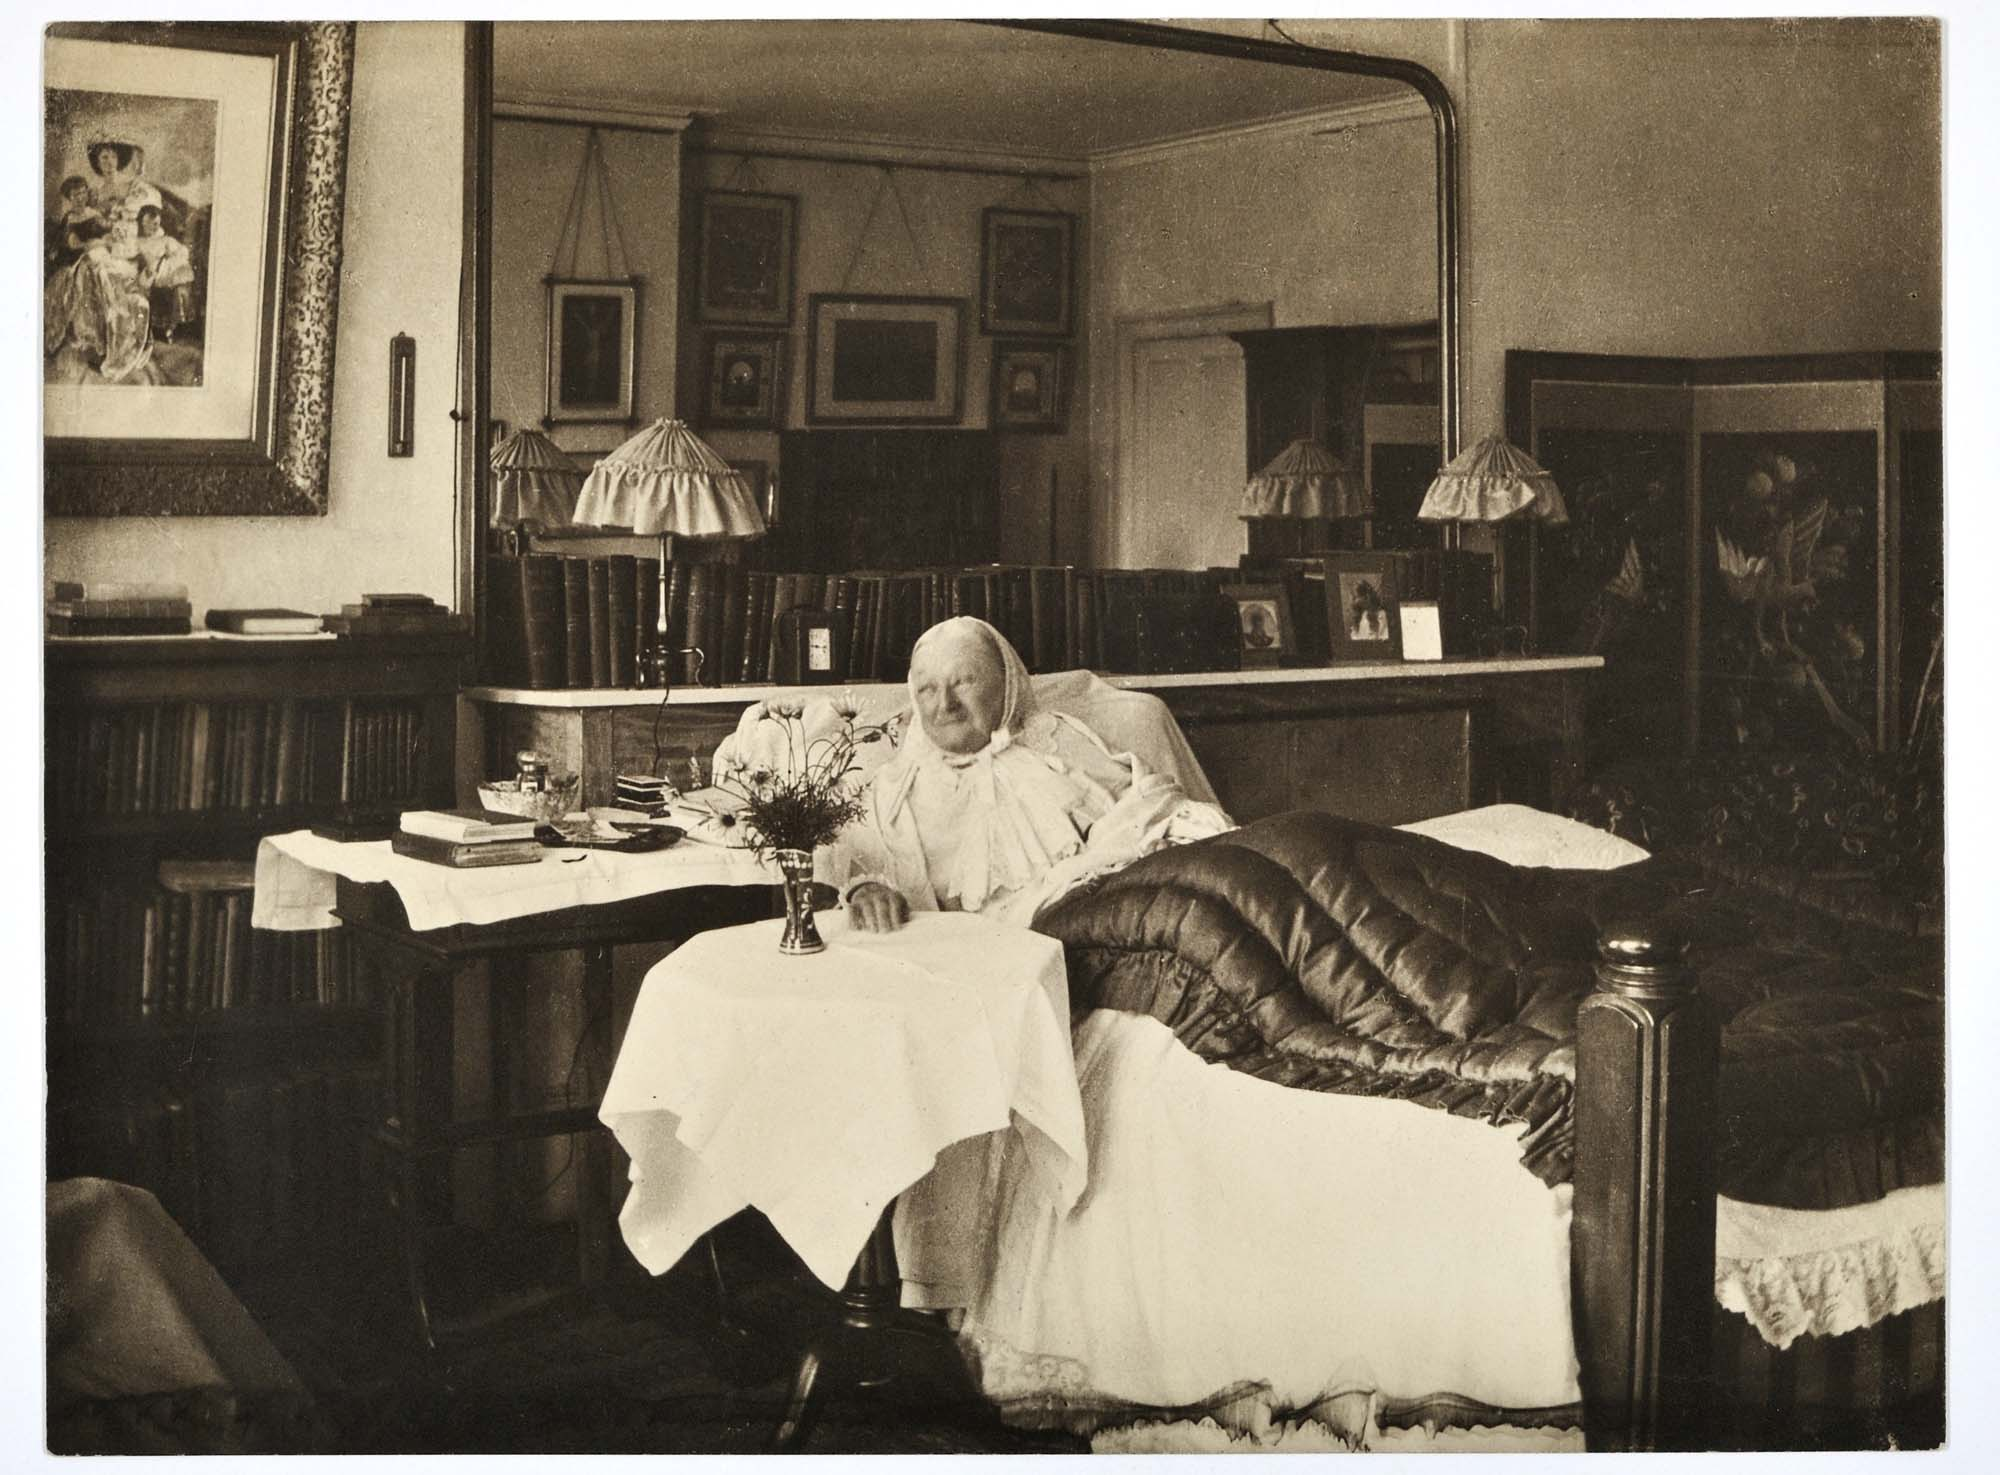 a photo of an elderly woman in bed